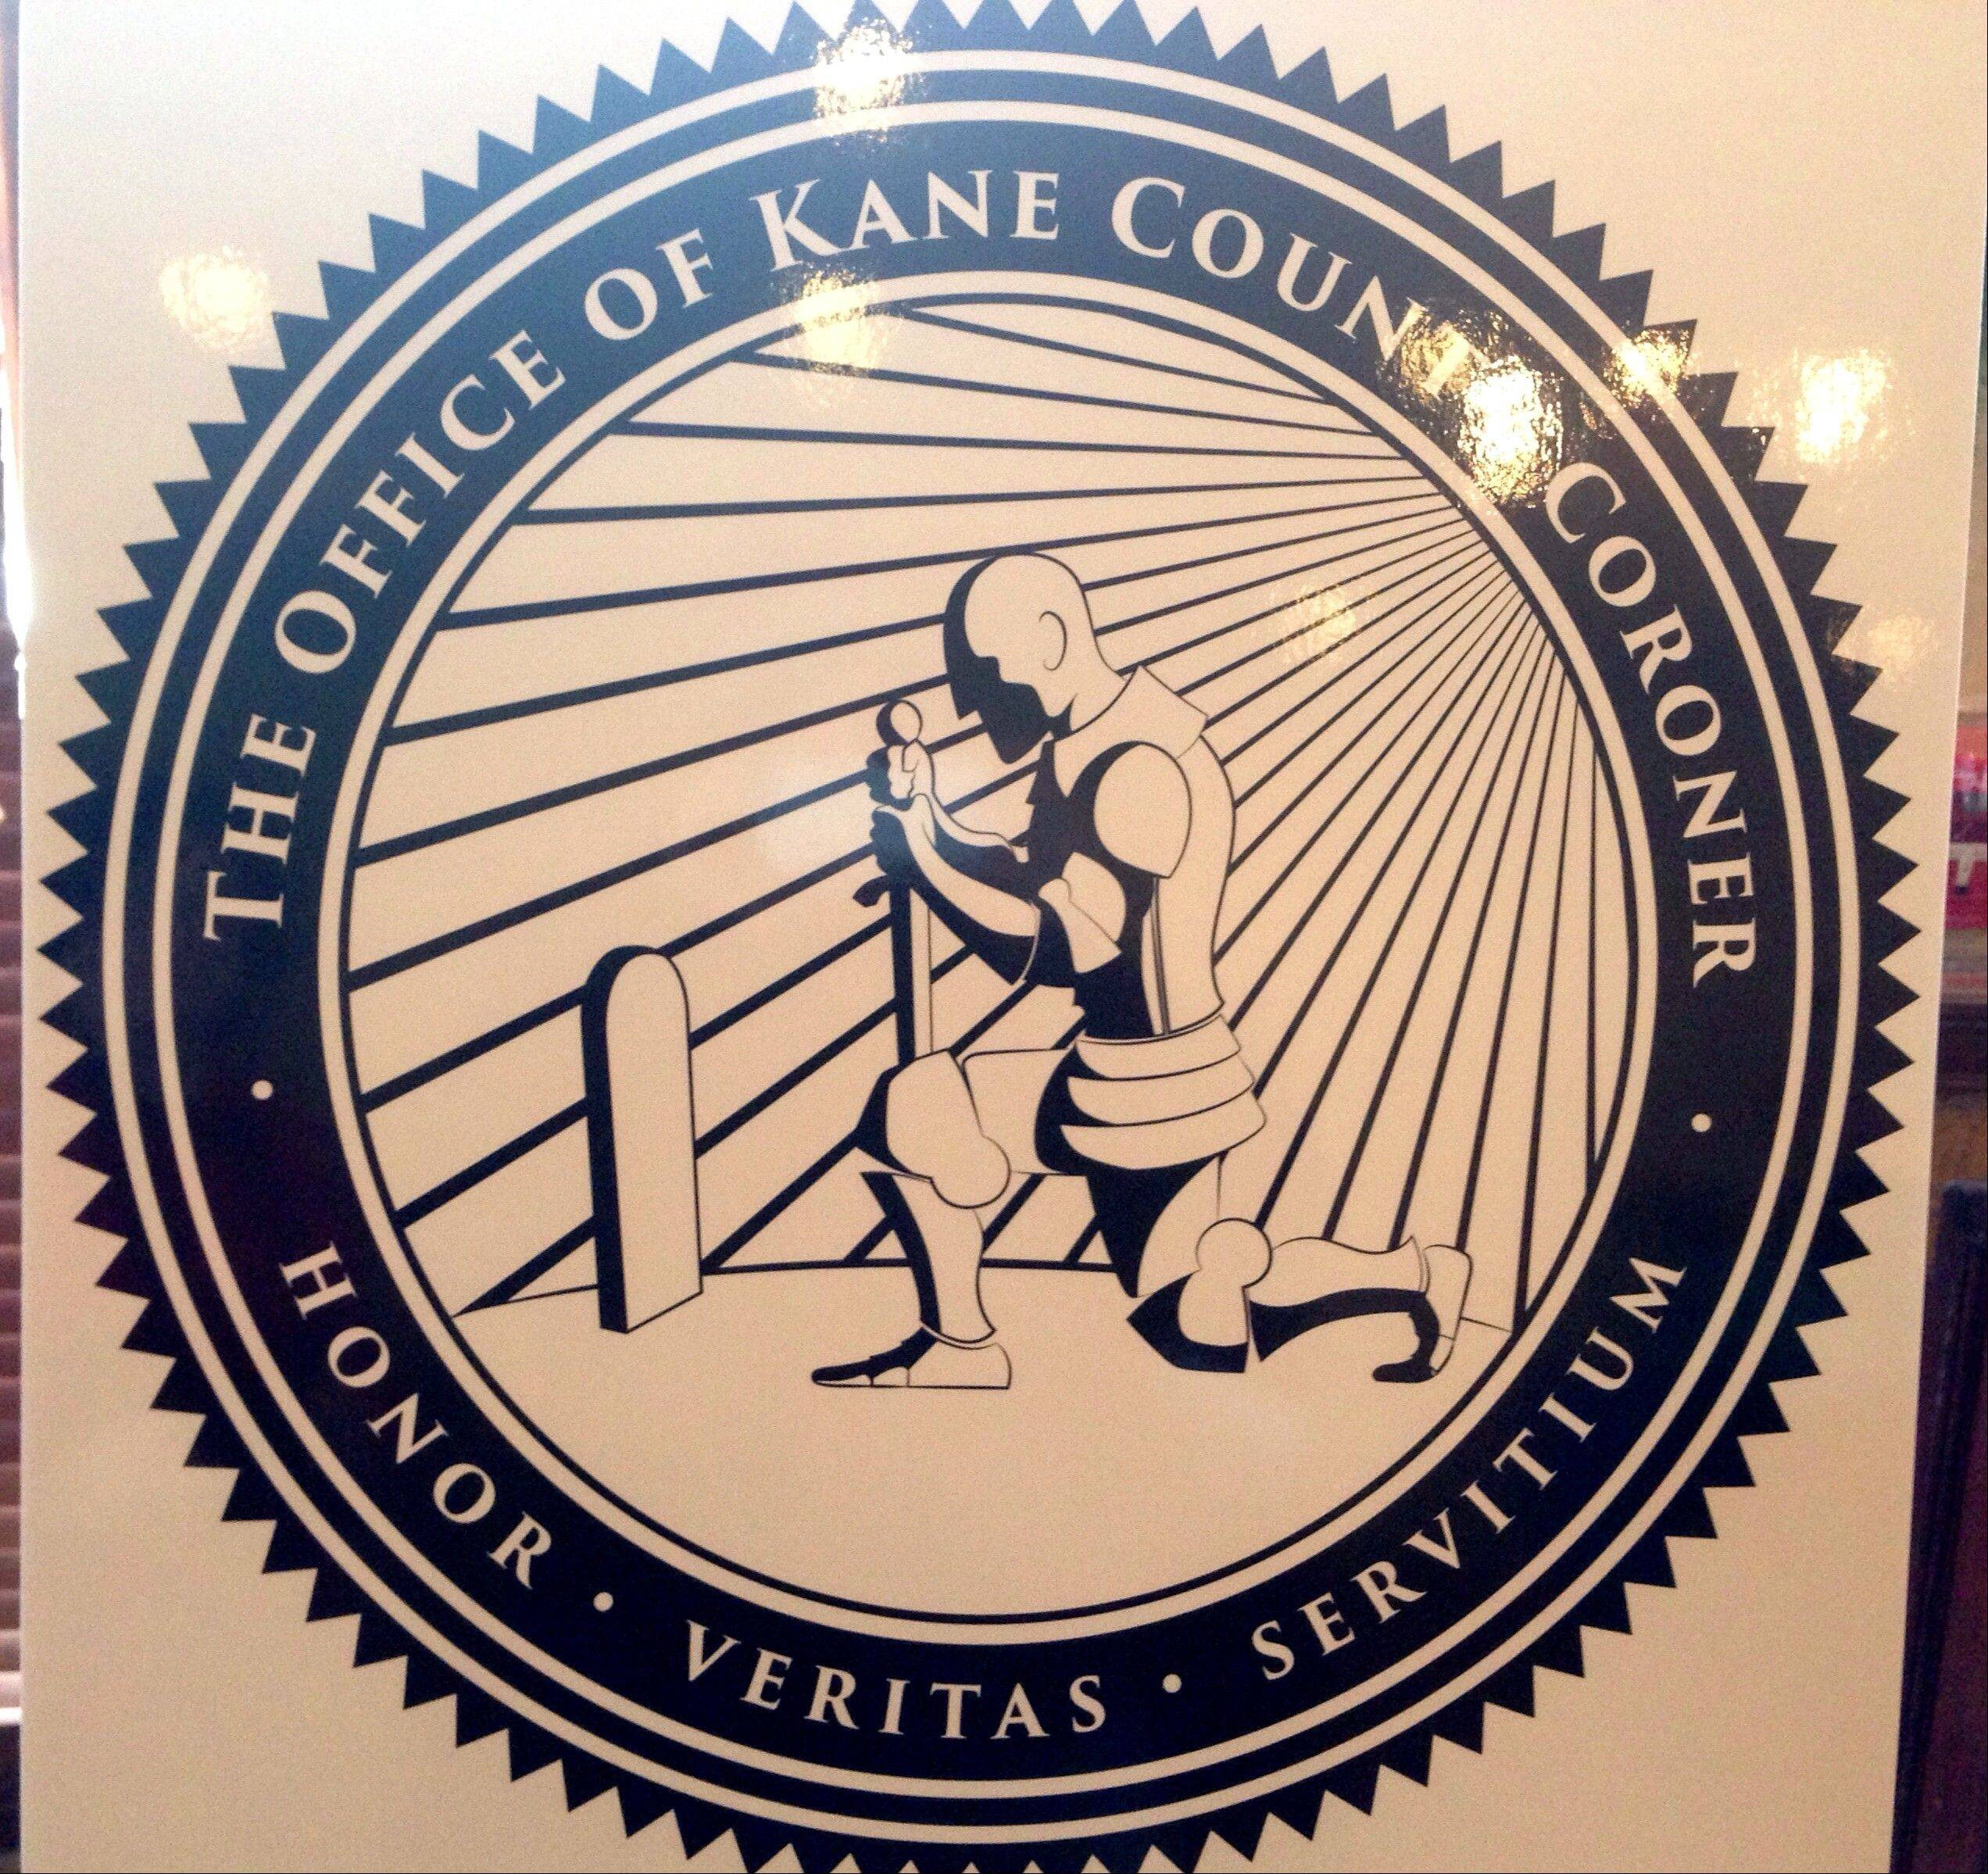 Kane Co. coroner unveils new logo to boost office's image